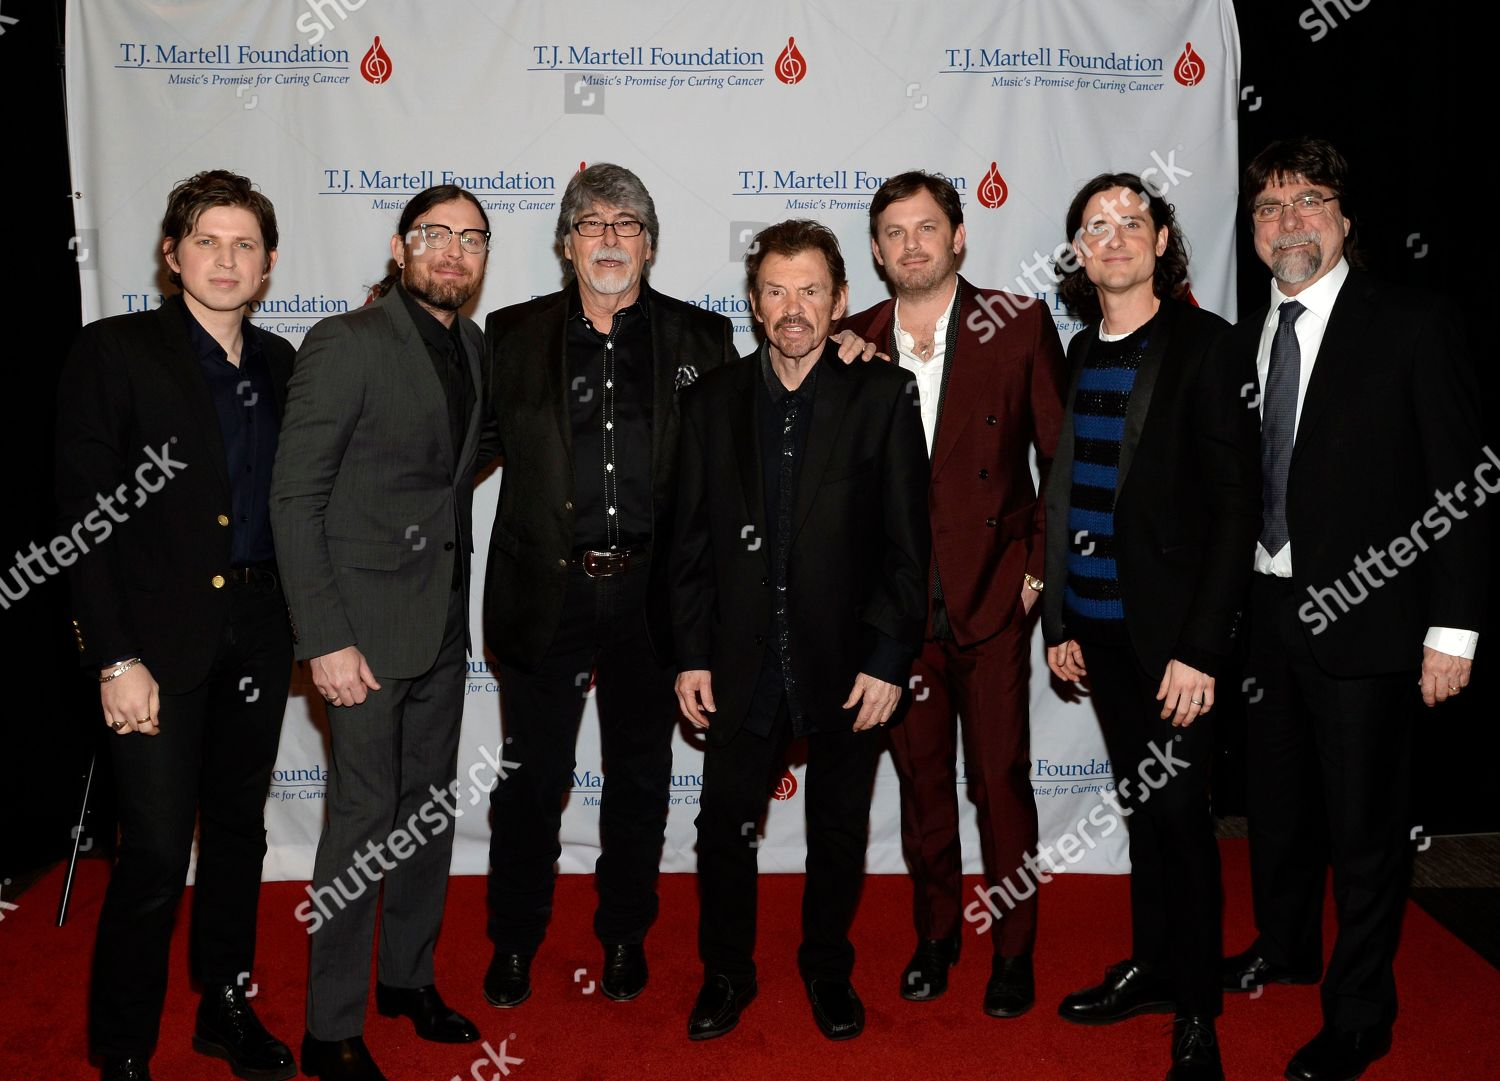 Stock photo of T.J. Martell 11th. Annual Nashville Honors Gala, USA - 25 Feb 2019